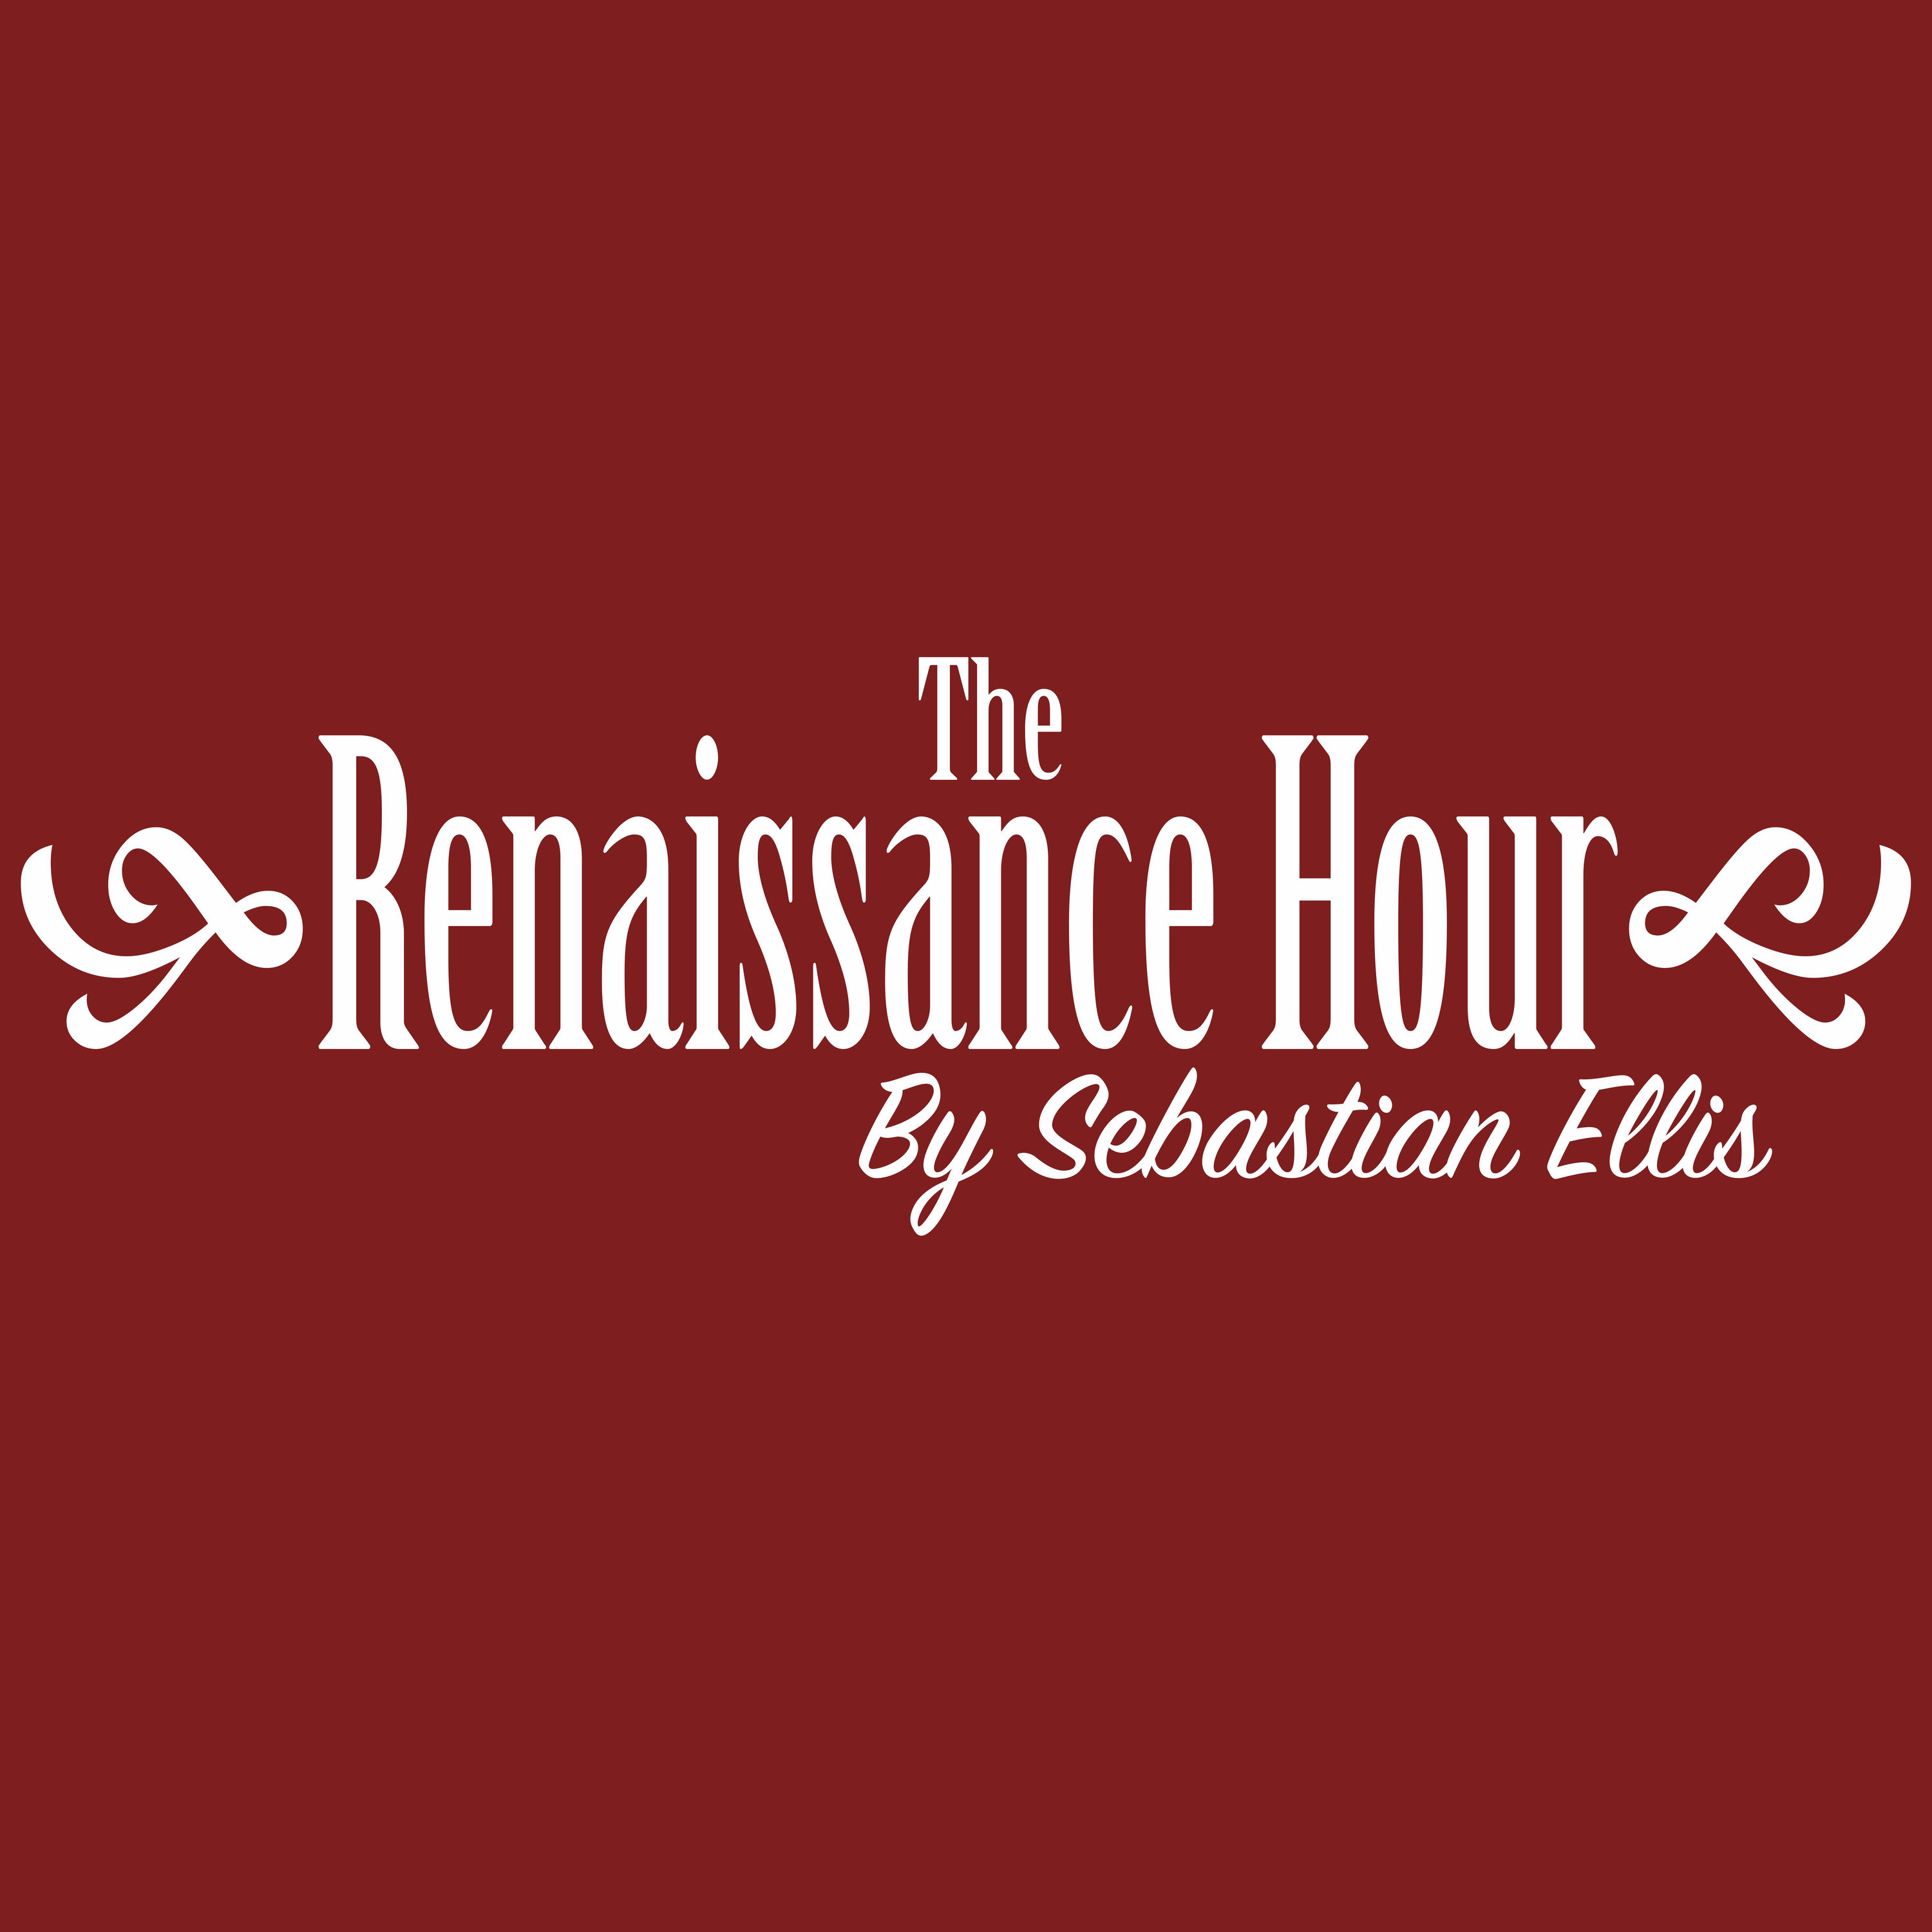 The Renaissance Hour